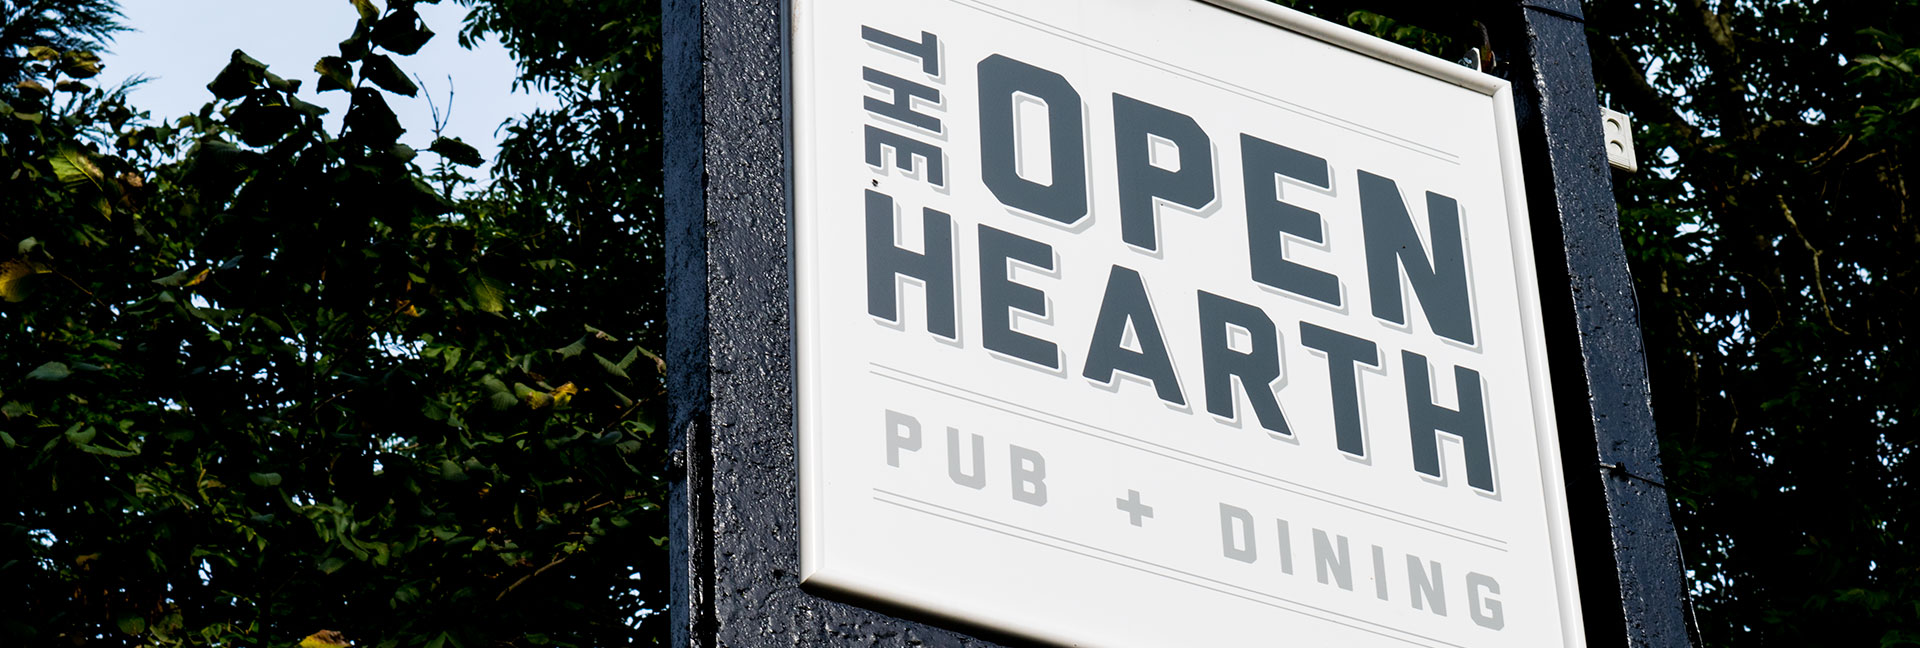 The Open Hearth | Pub & Restaurant in Pontypool